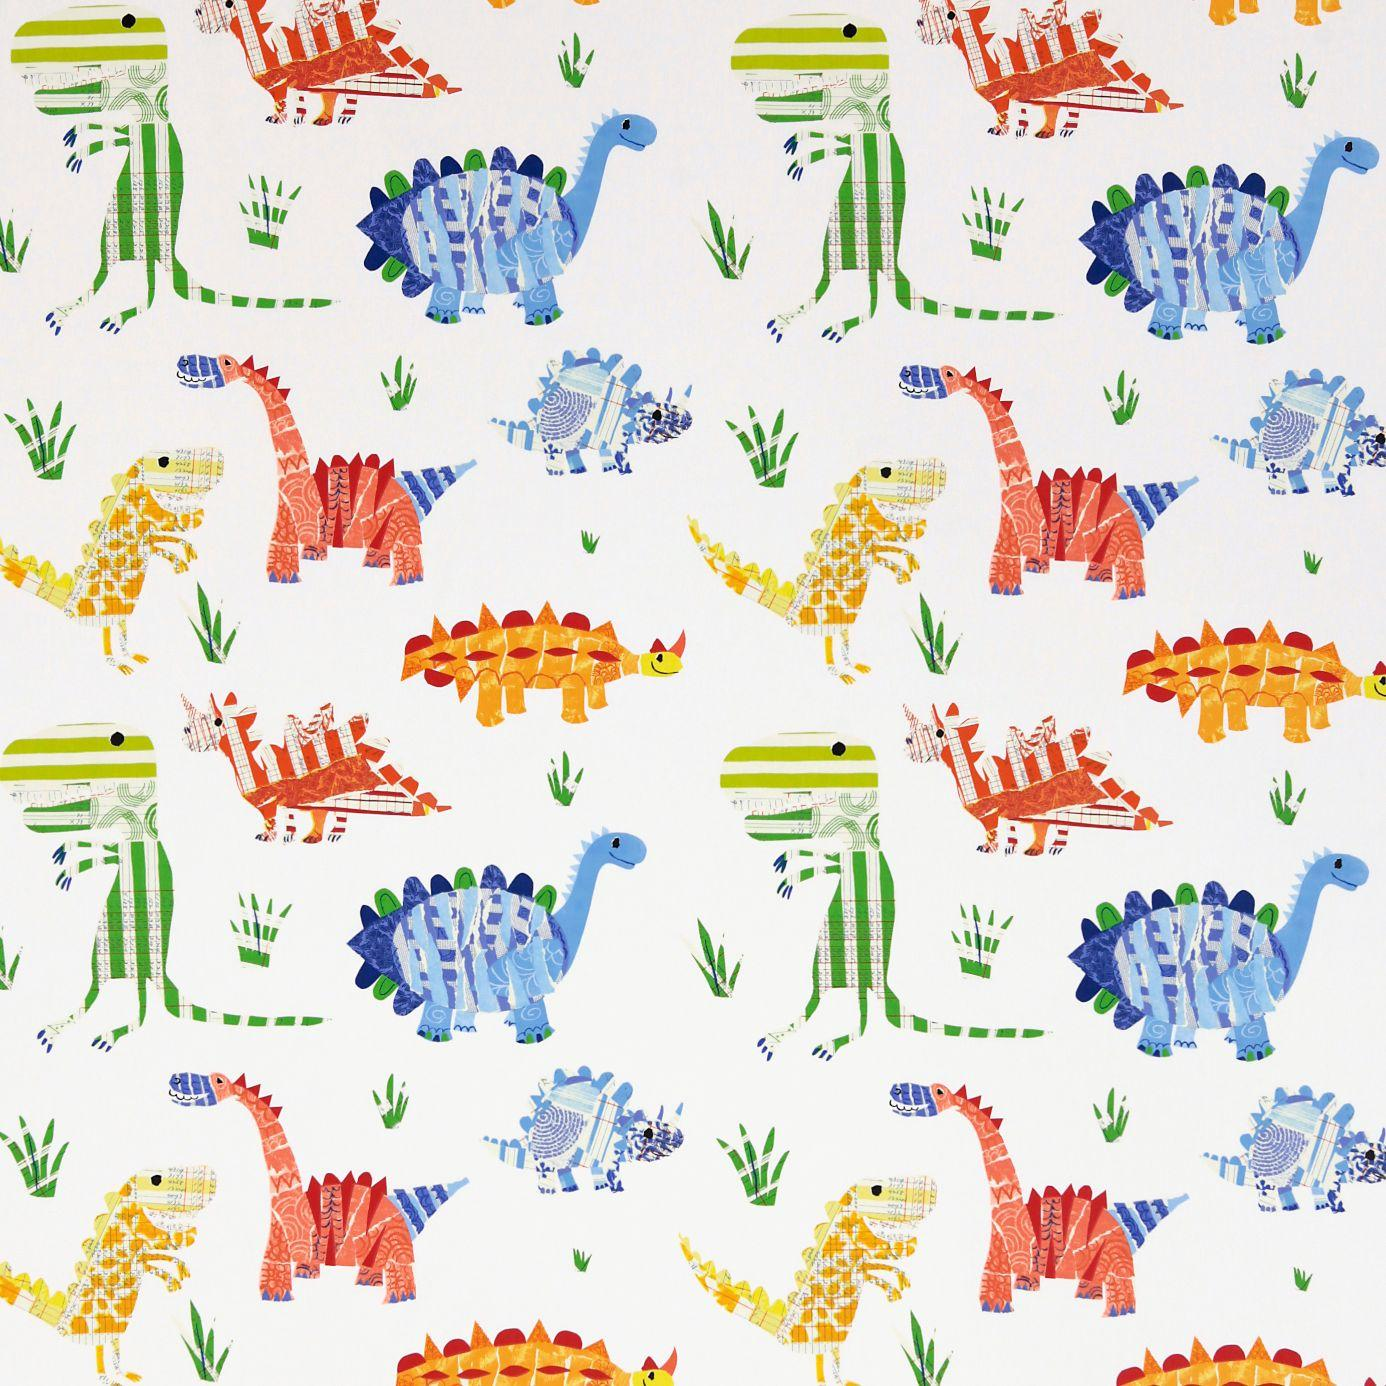 Jolly jurassic fabric aqua tangerine apple natural 3229 for Kids pattern fabric